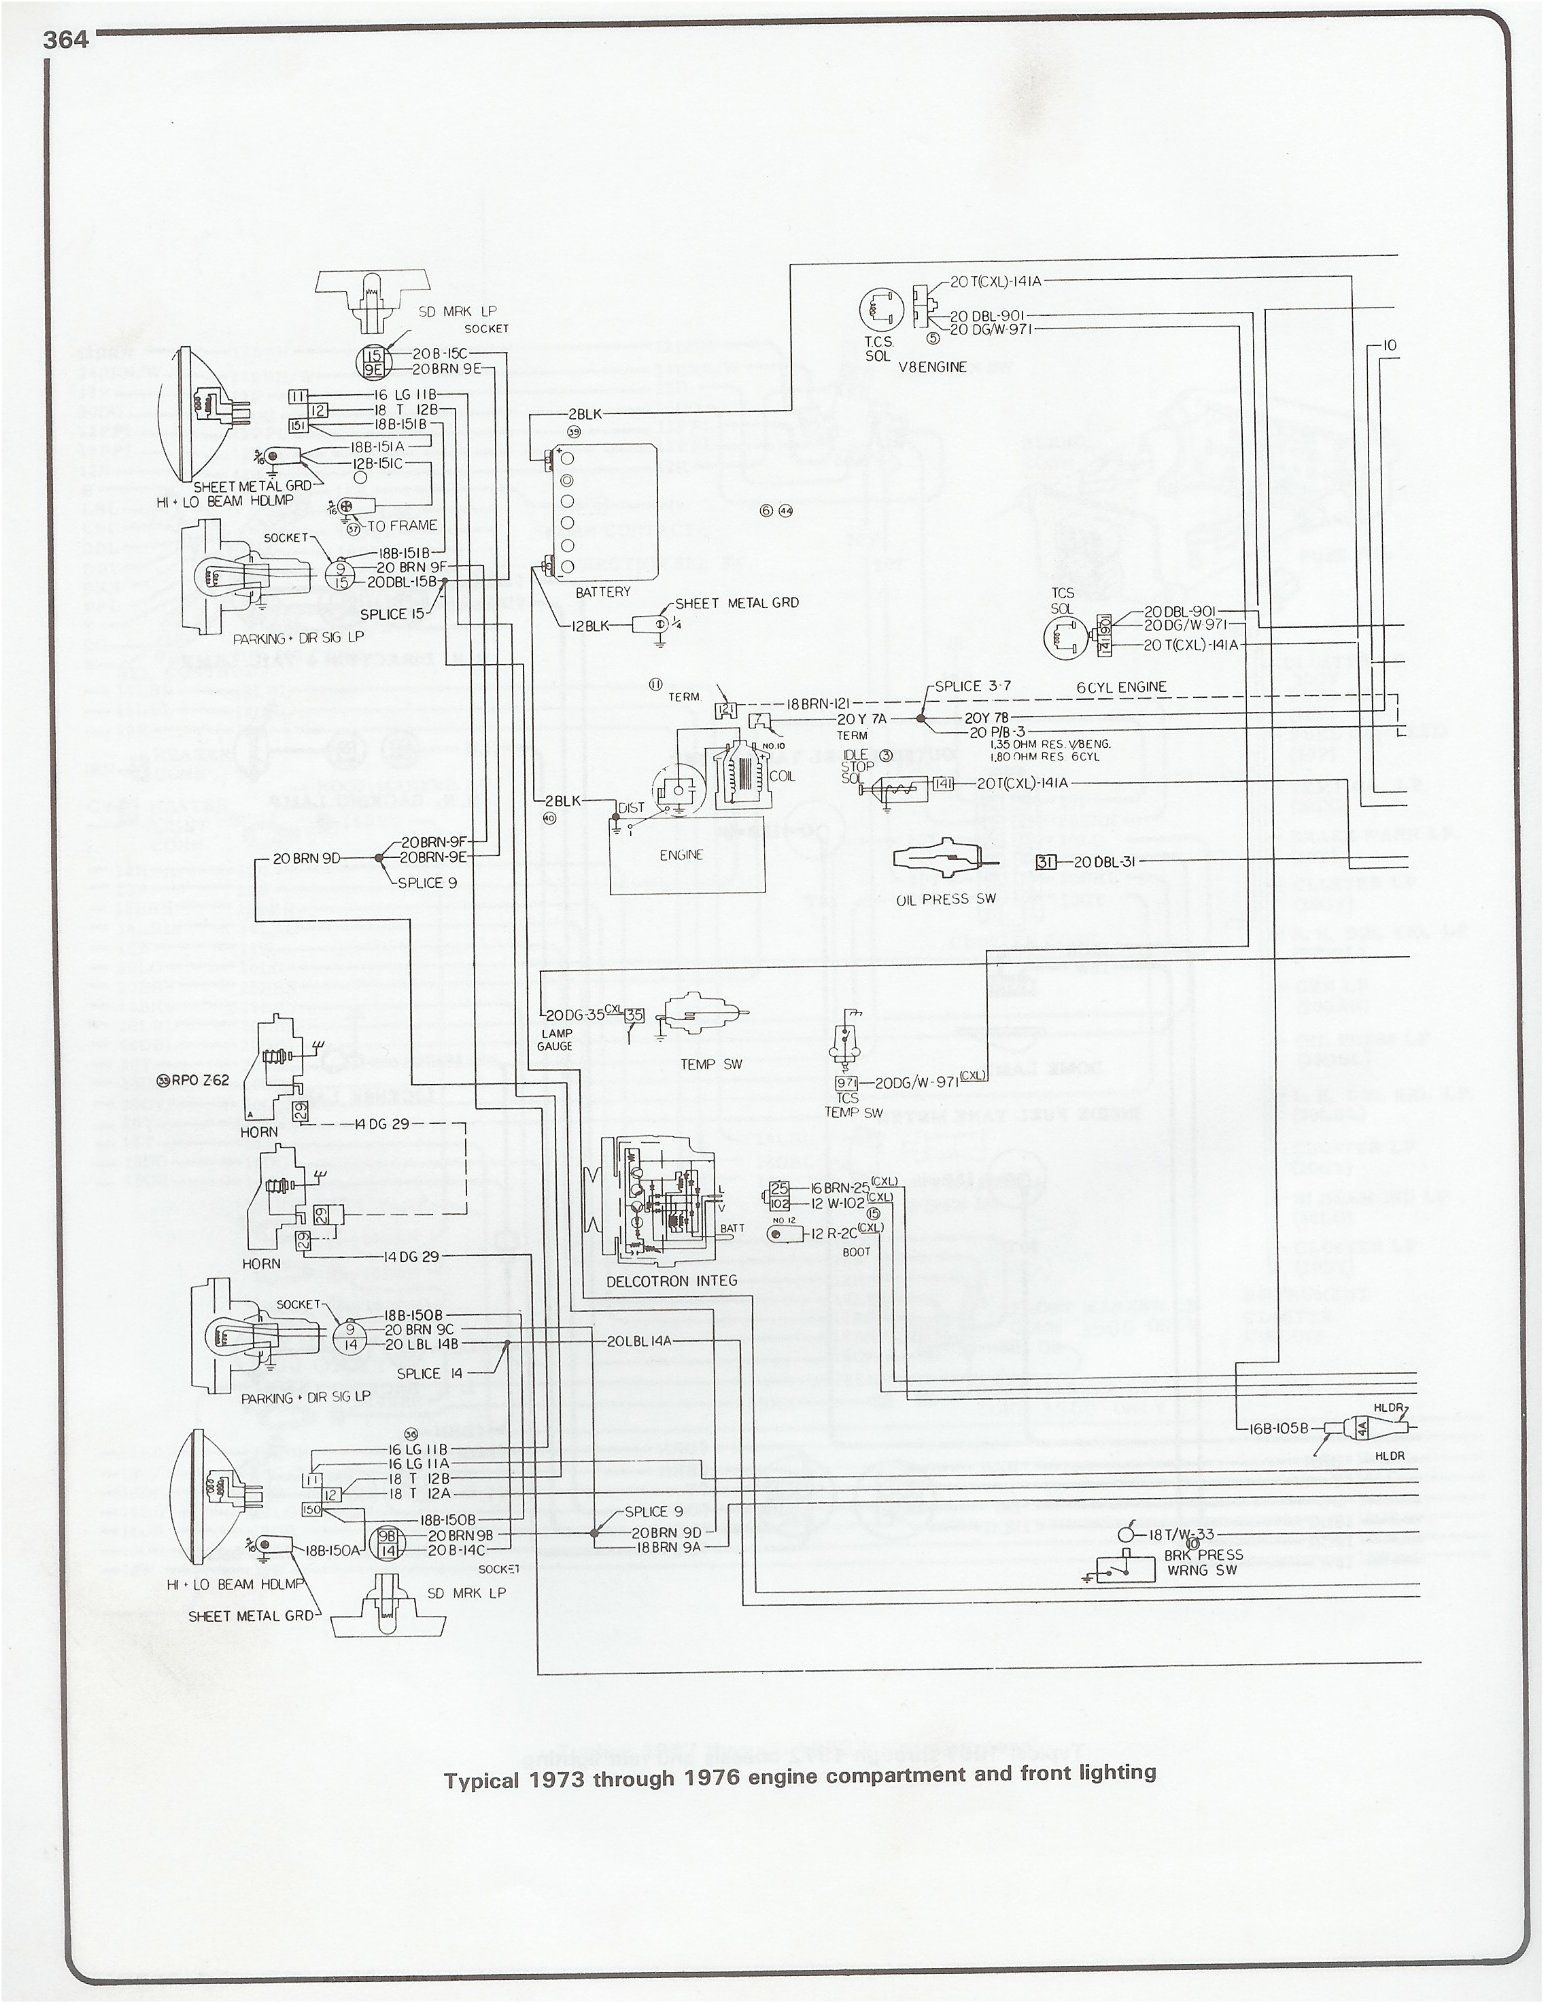 Wiring Diagram 1973 - 1976 Chevy Pickup #Chevy #Wiring ... on